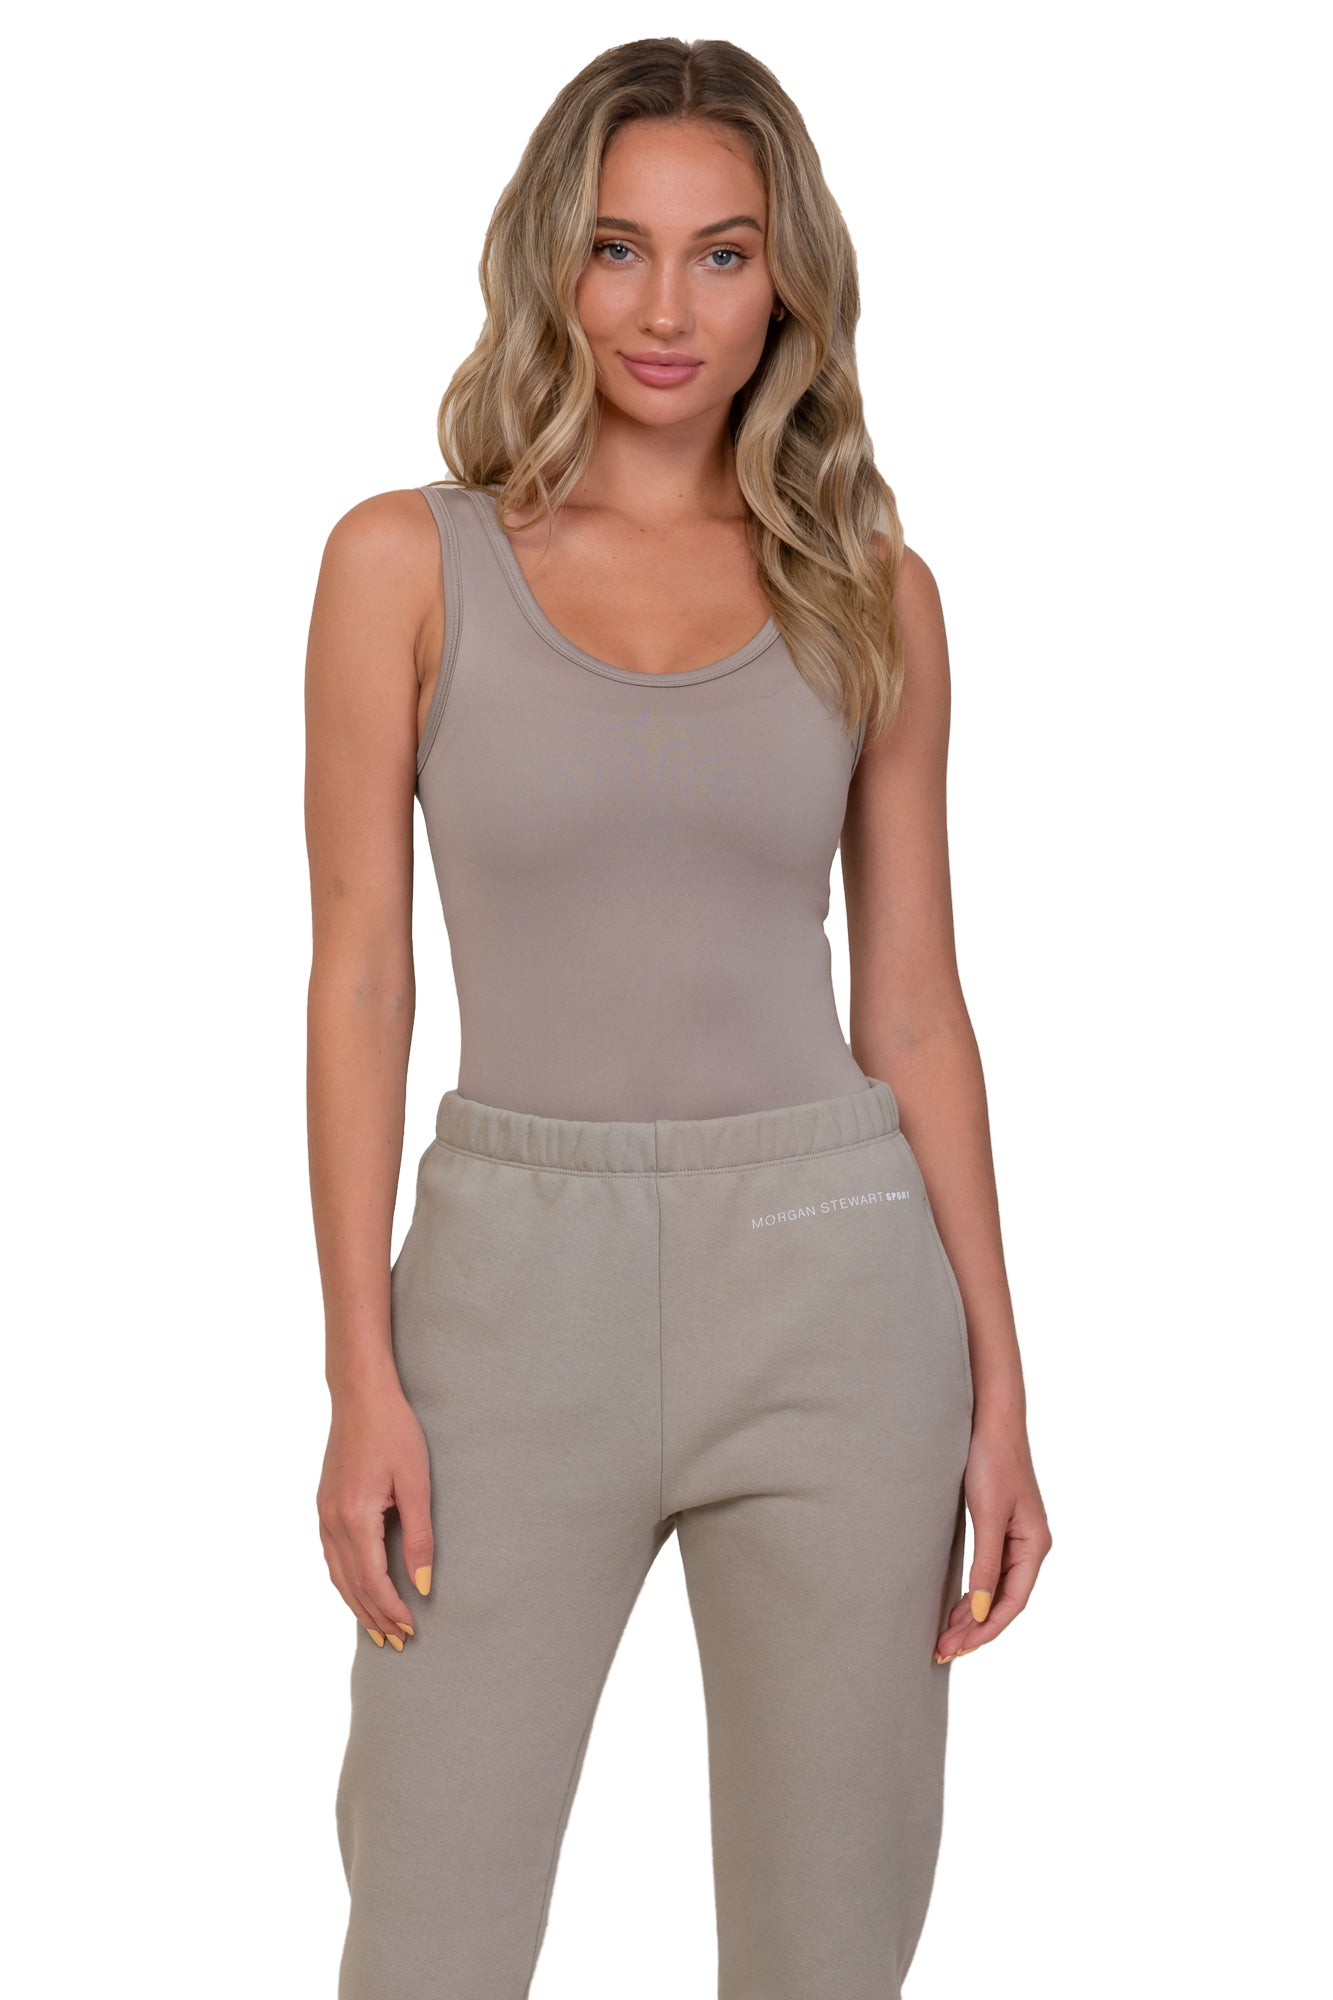 Simply Taupe Tank Top